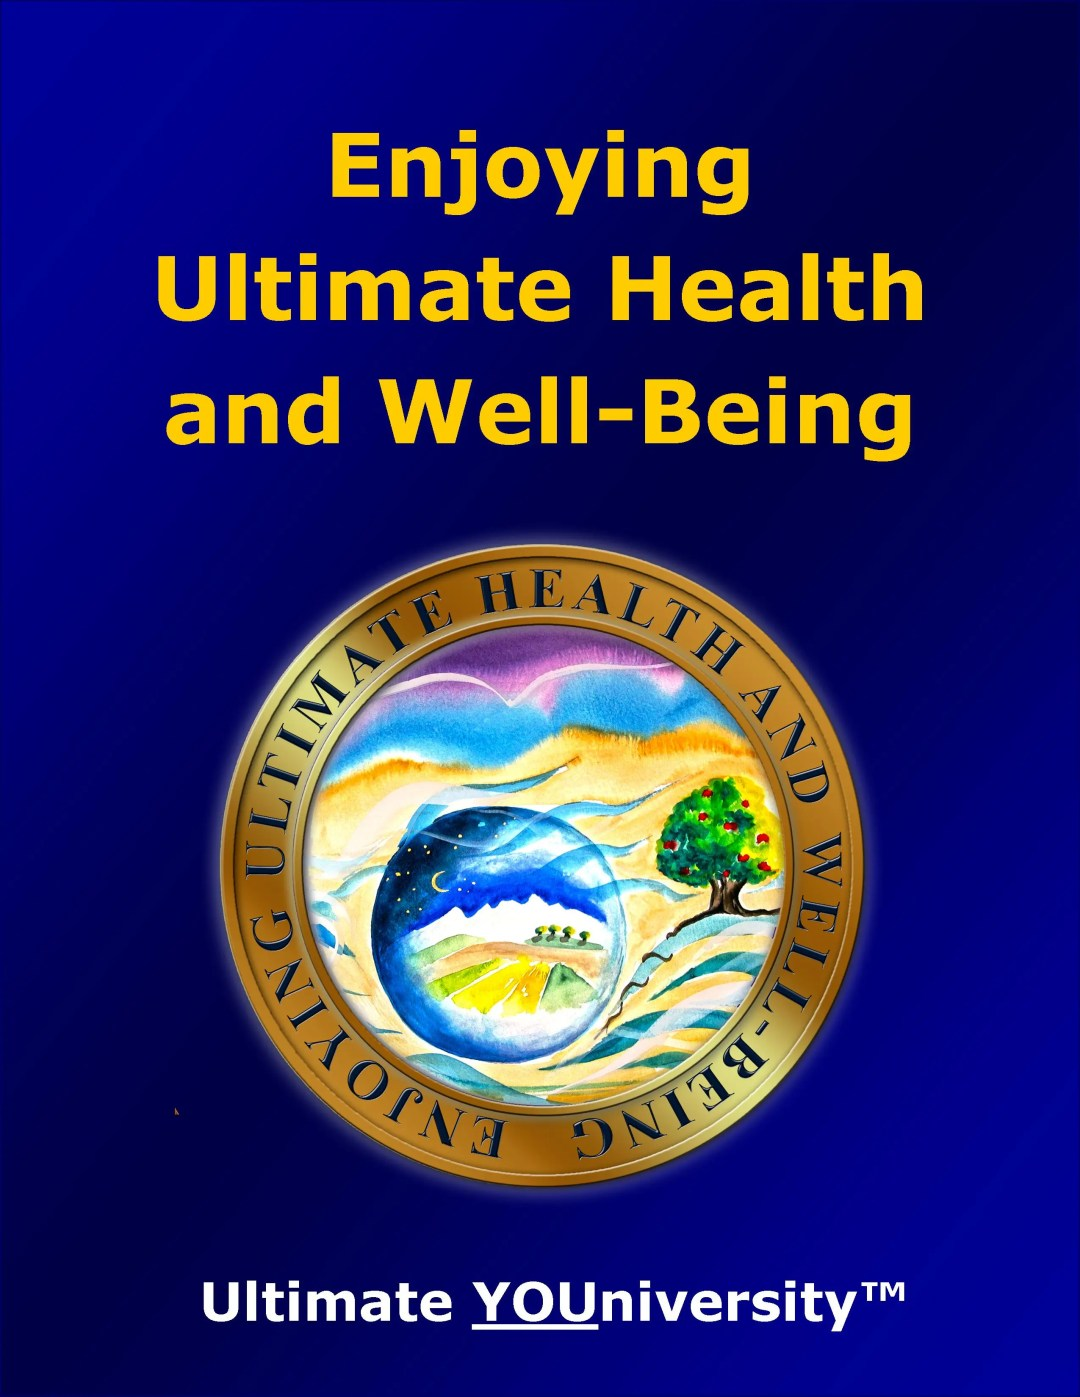 Enjoying Ultimate Health and Well-Being, one of the 14 Categories